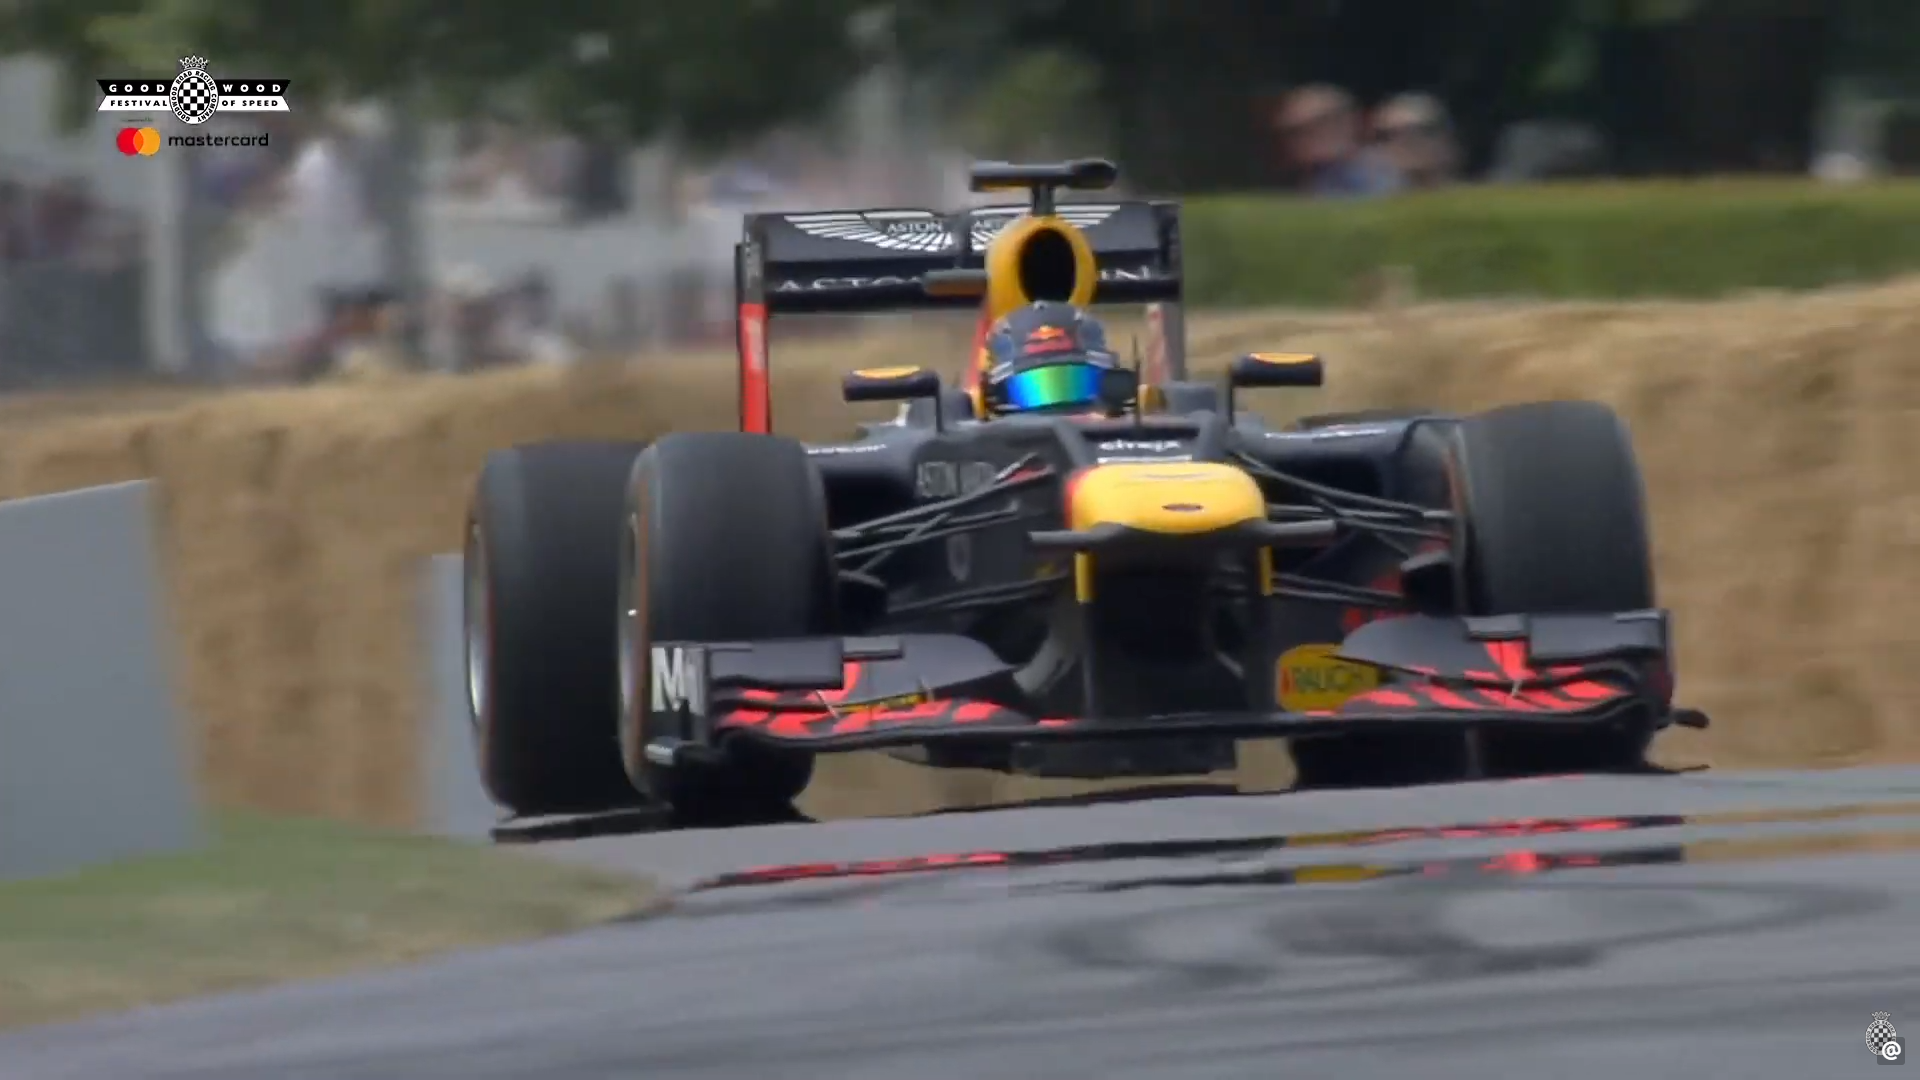 Goodwood Festival of Speed 2019 livestream